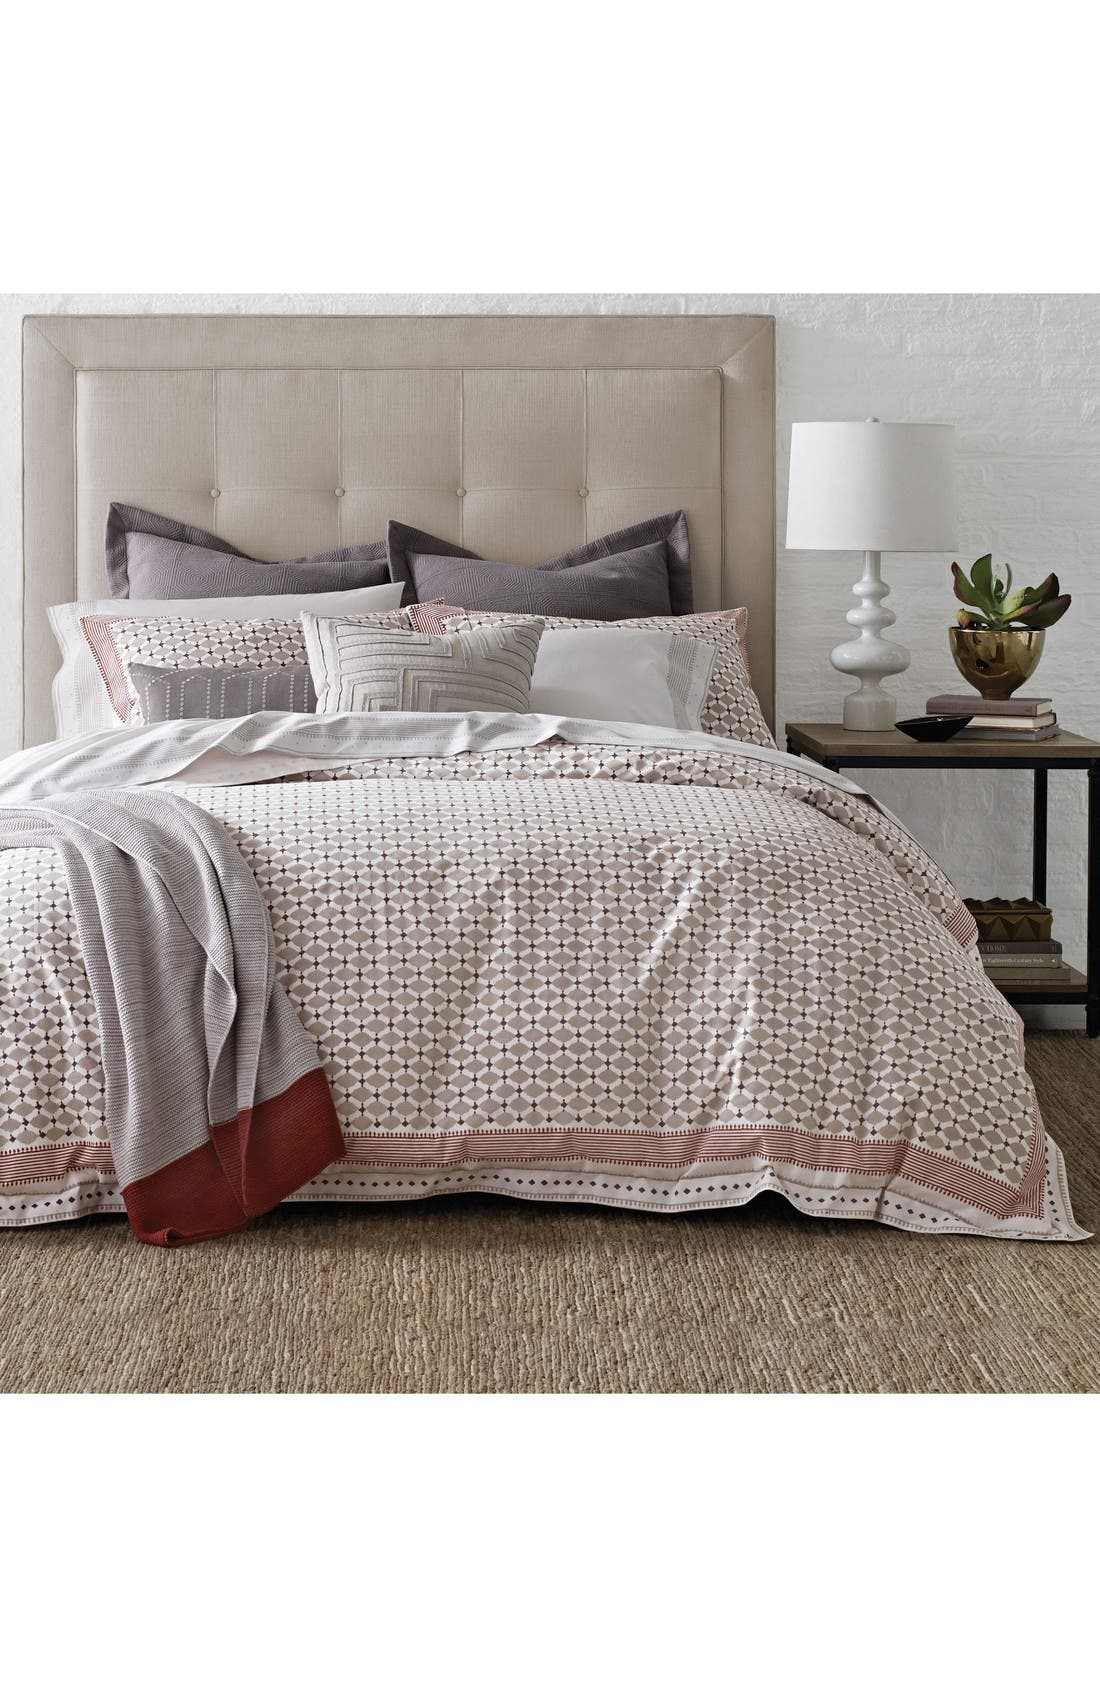 Main Image - DwellStudio Lucia Duvet Cover